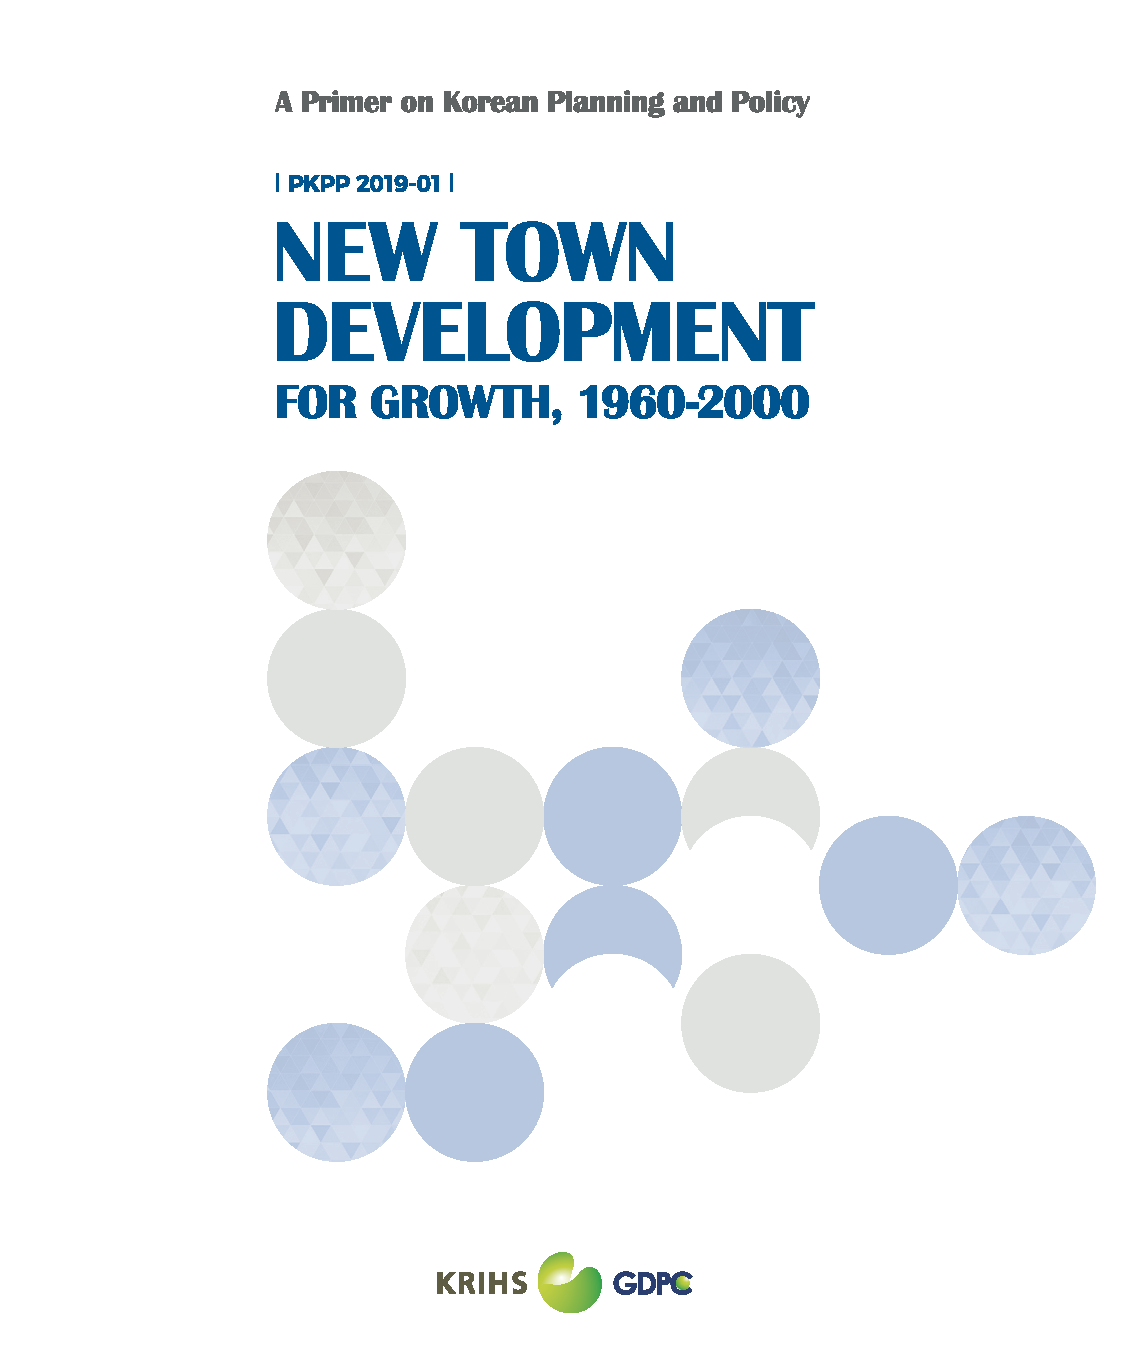 New Town Development for Growth, 1960-2000 (A Primer on Korean Planning and Policy)표지